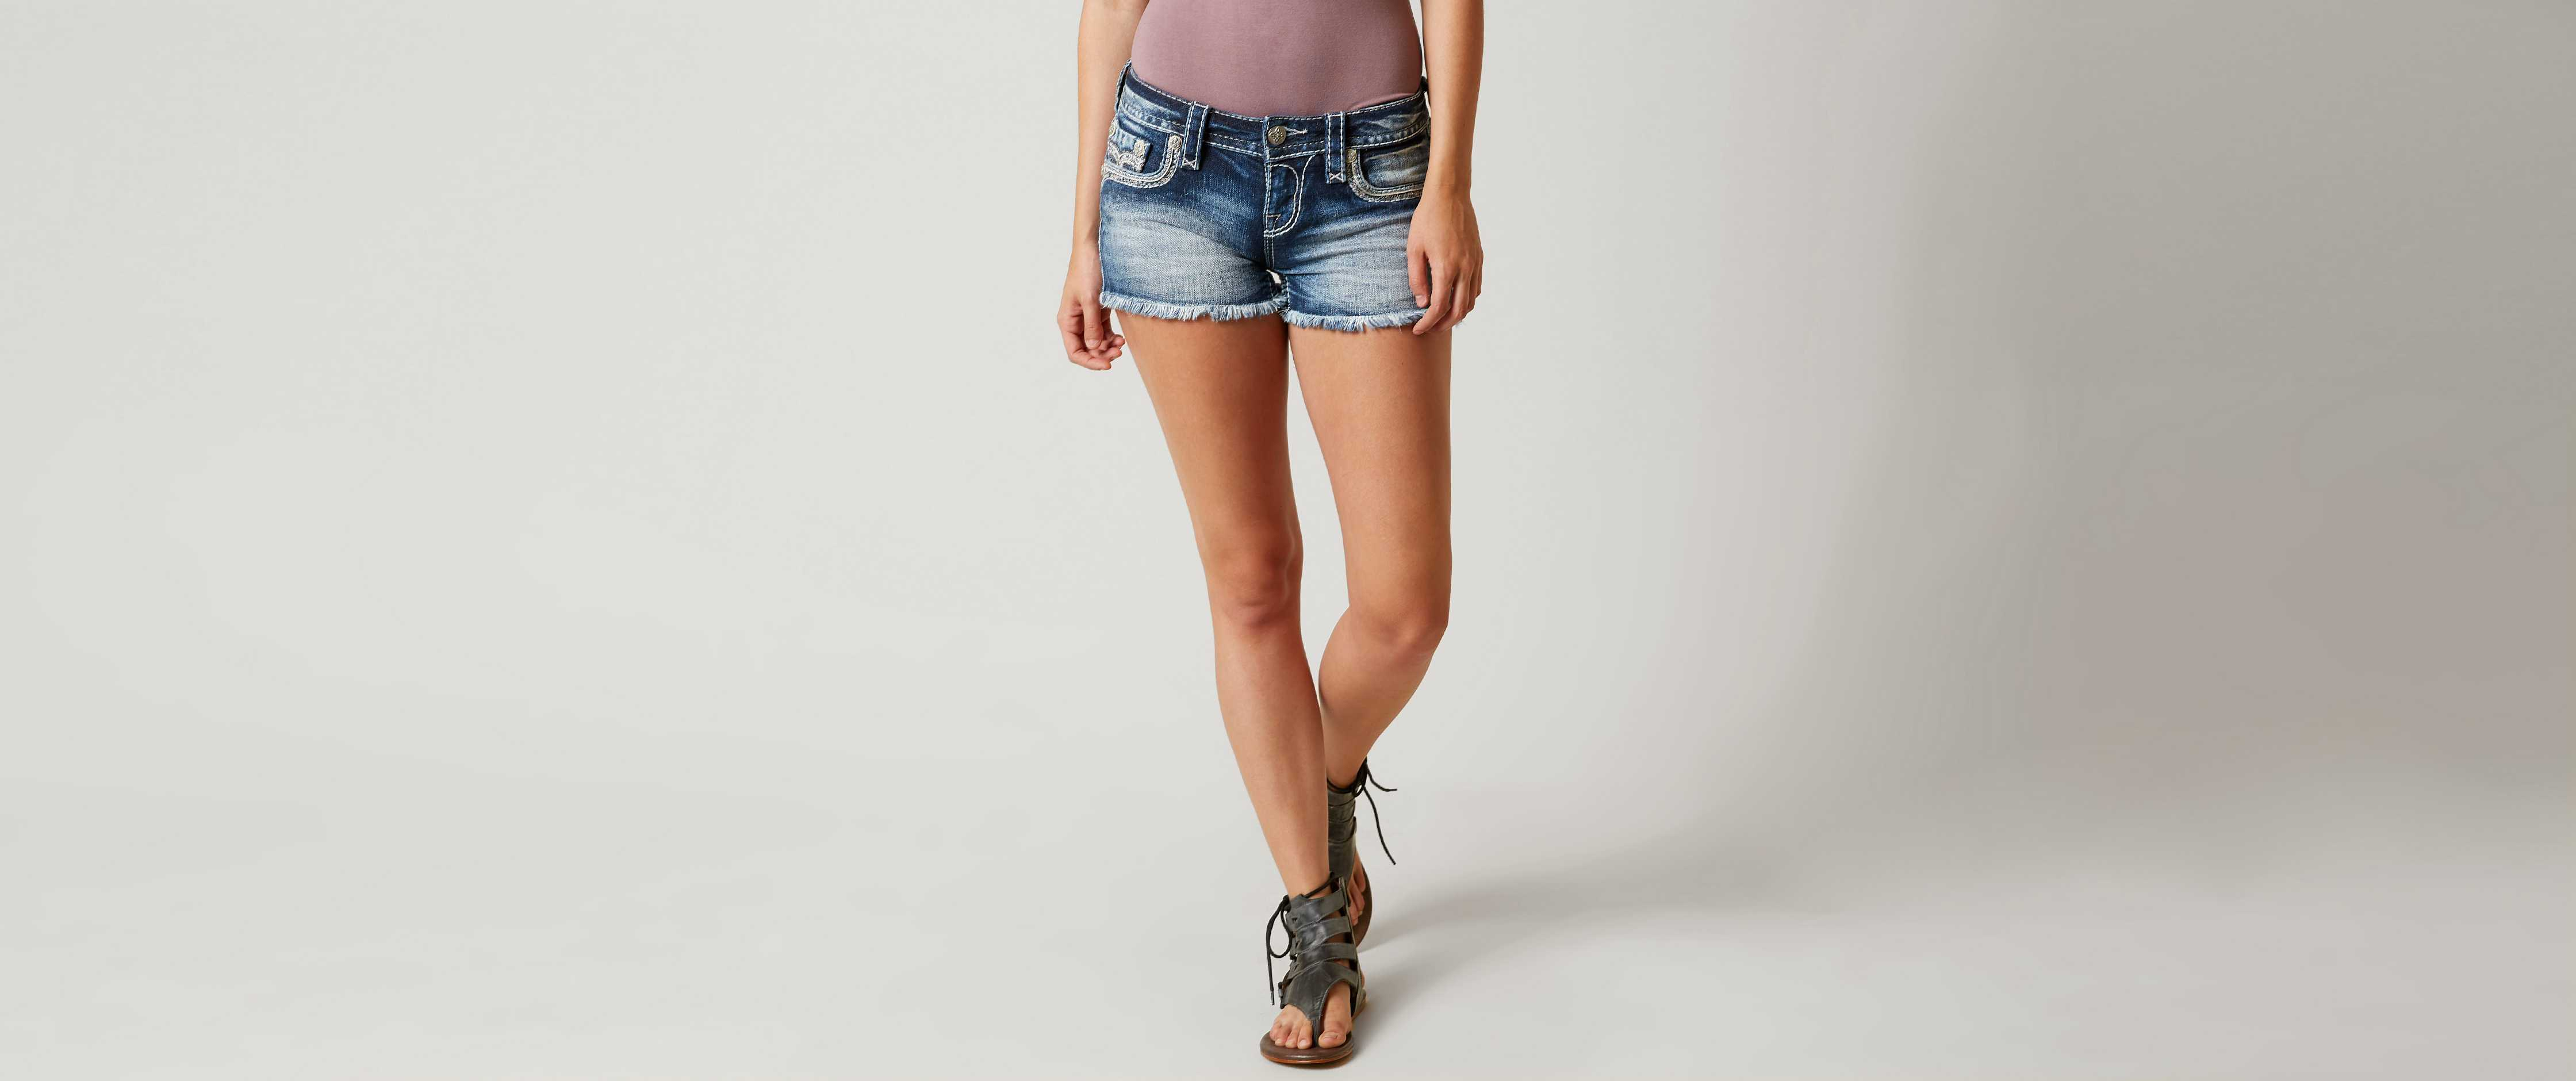 Why shorts are a must-have for women?